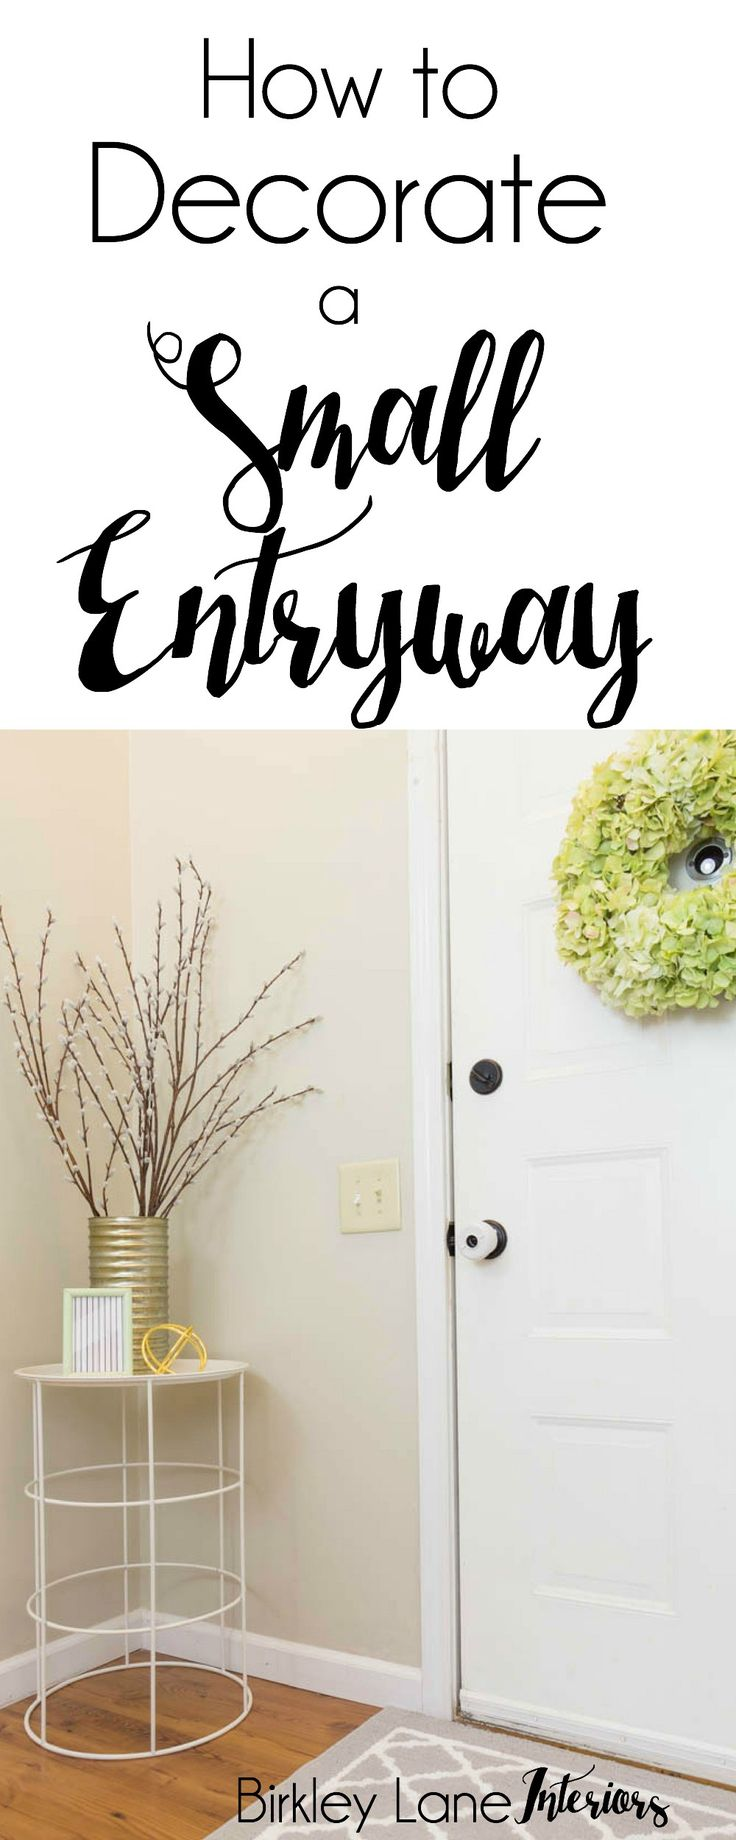 25 Best Ideas About Small Entryway Decor On Pinterest Small Entry Decor Foyer Ideas And Small Entrance Halls